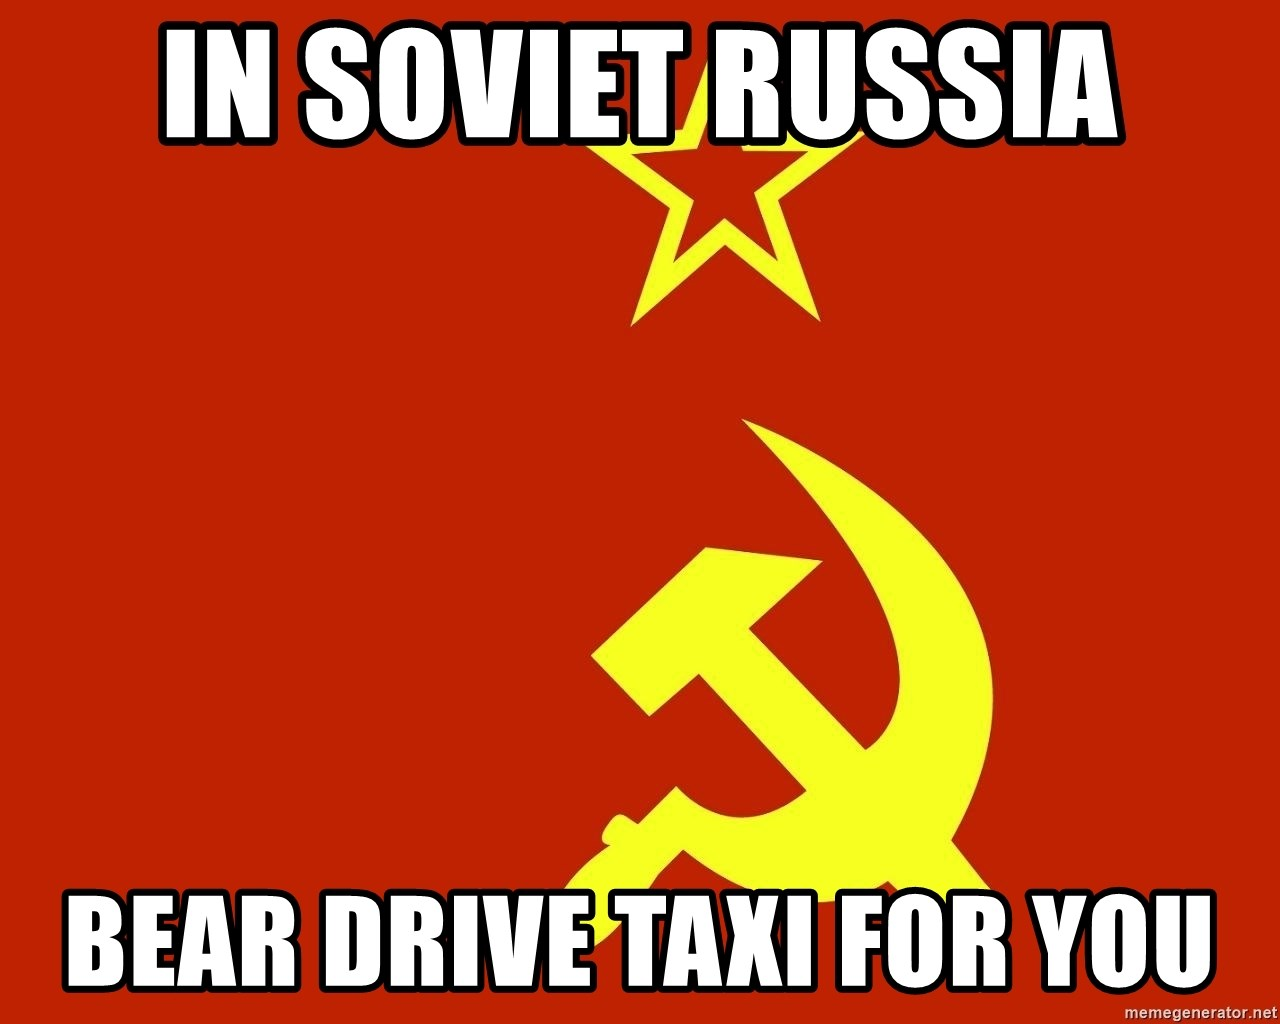 In Soviet Russia - In soviet russia Bear drive taxi for you